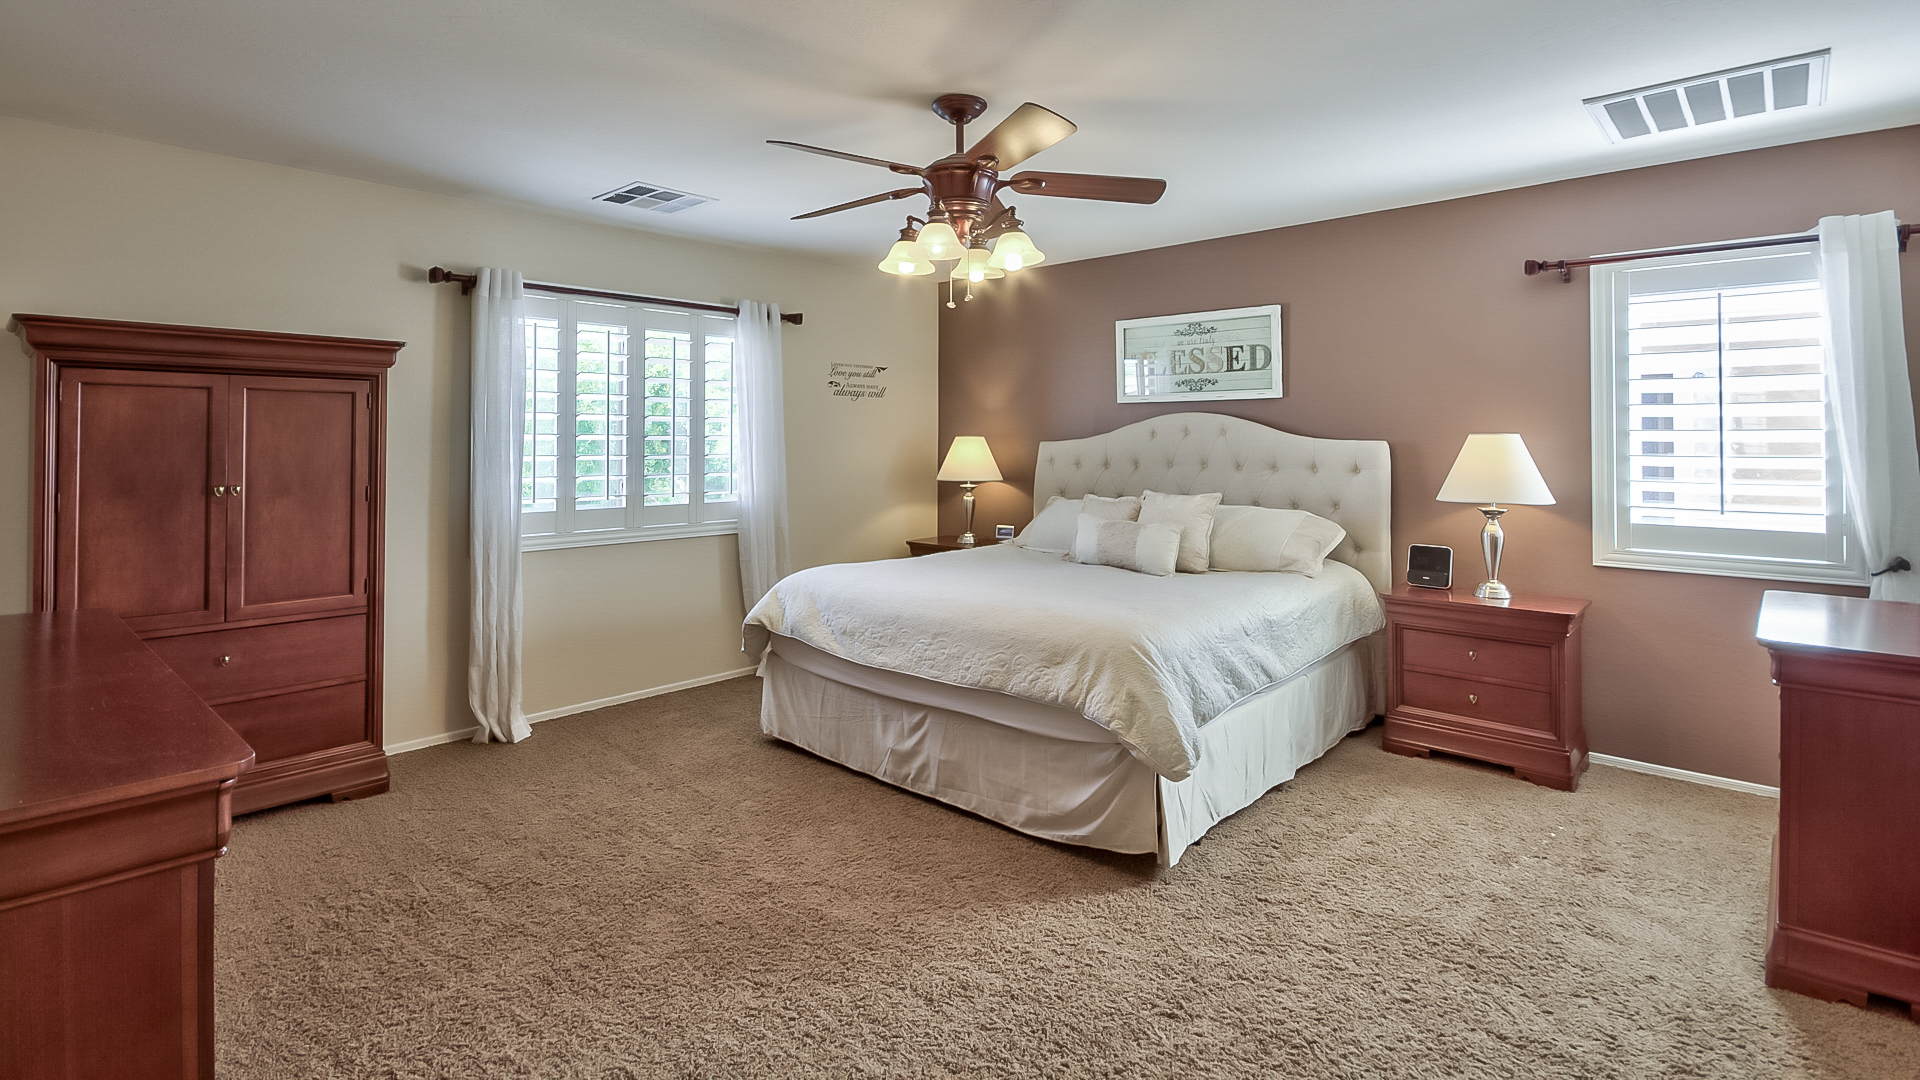 5 bed 3 bath south gilbert home for sale with pool in vista dorada